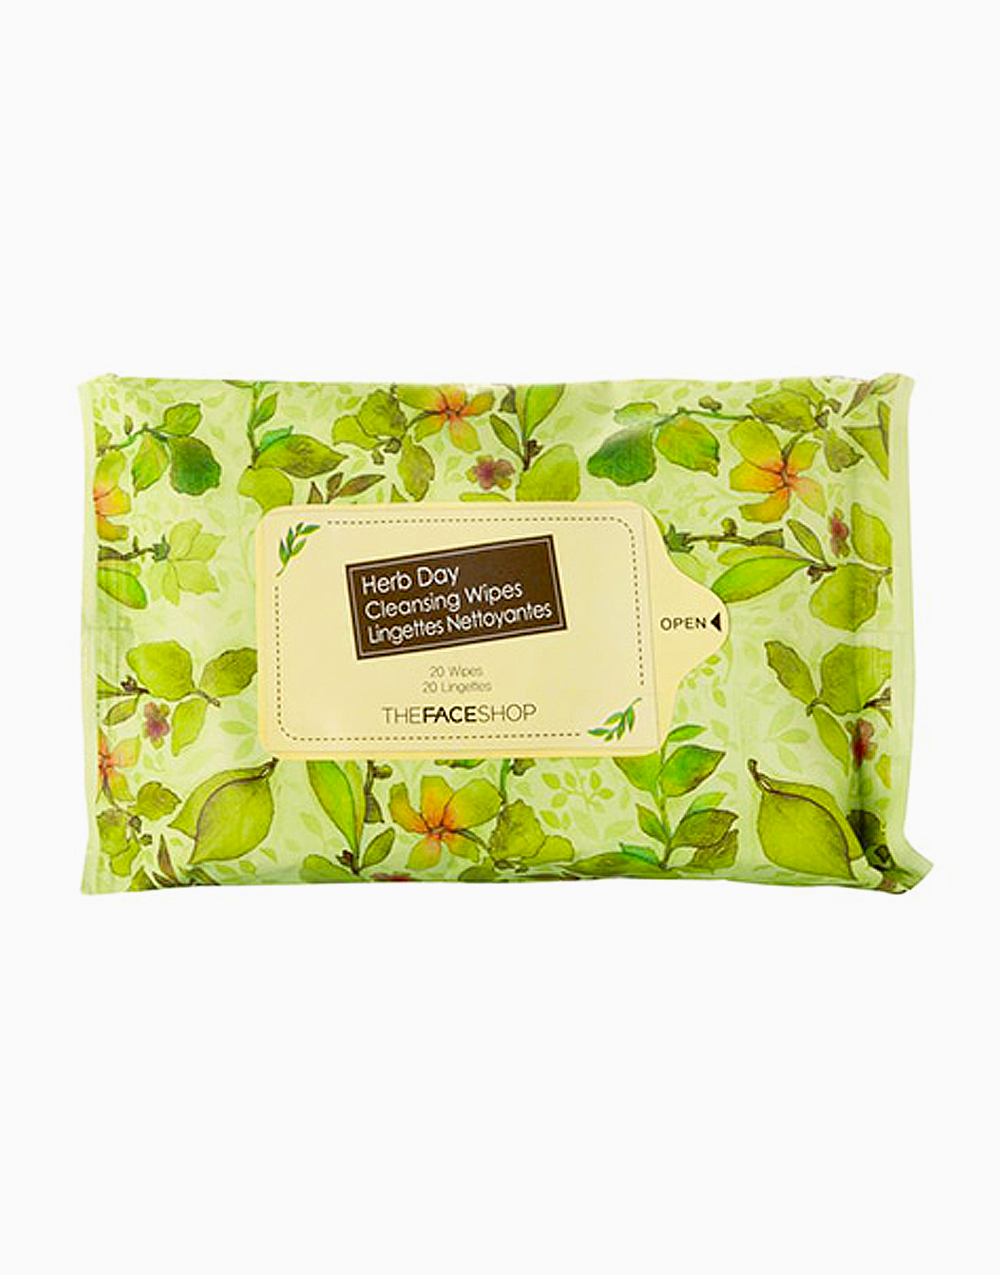 Herb Day Cleansing Tissue (20) by The Face Shop